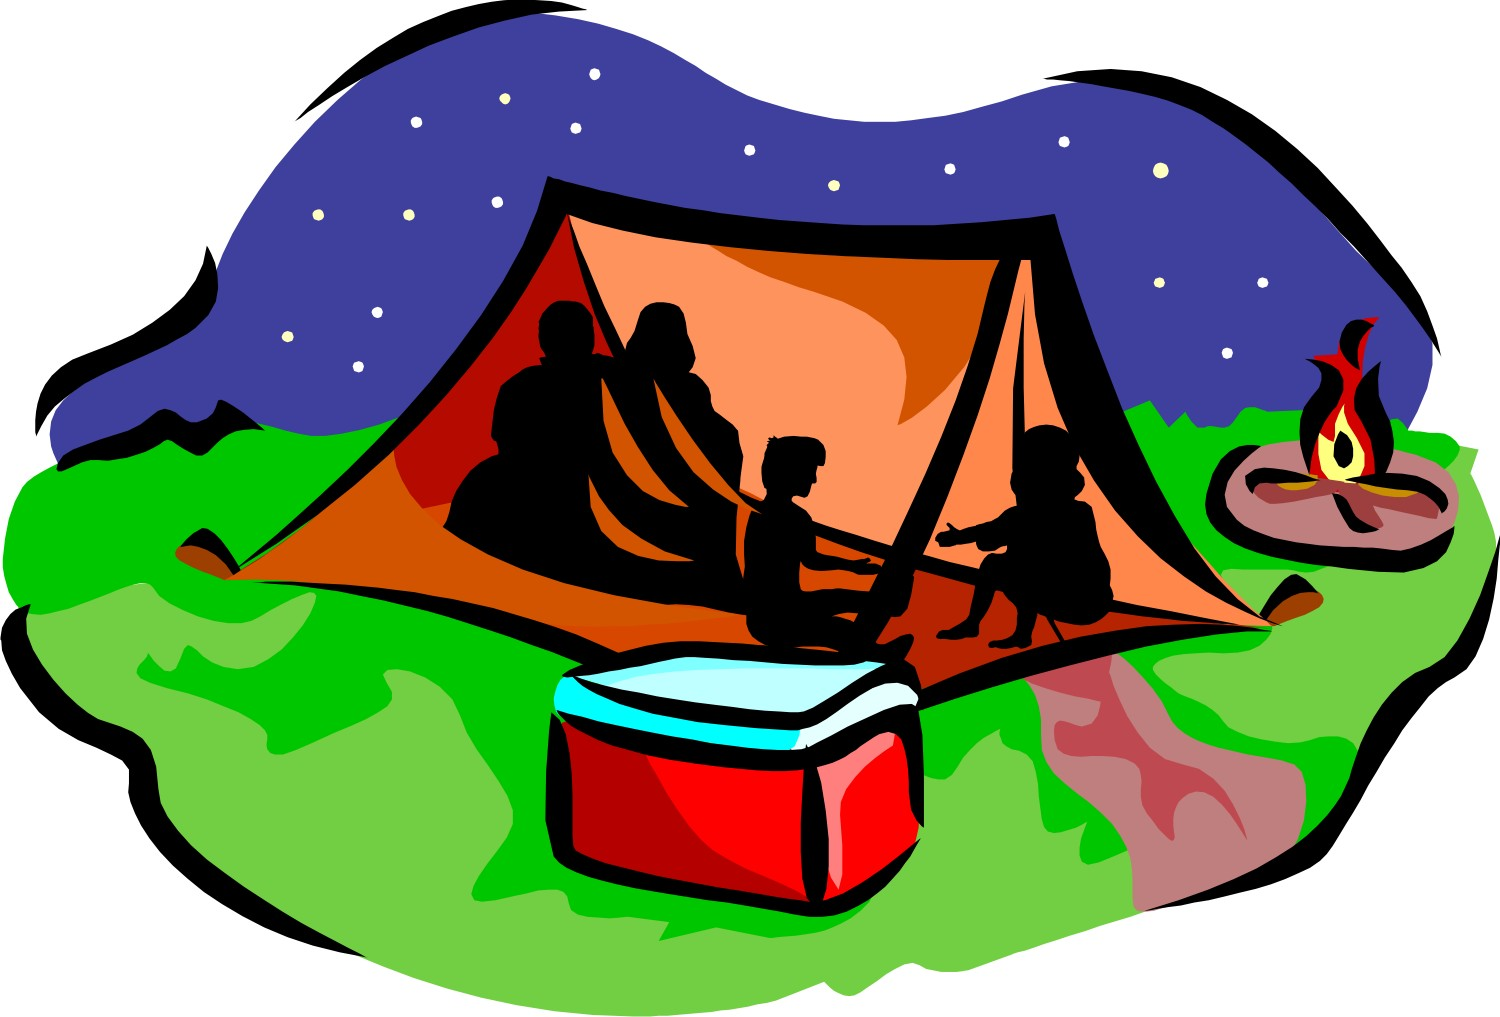 Party Tent Clipart Ddgwjx Clipart Suggest